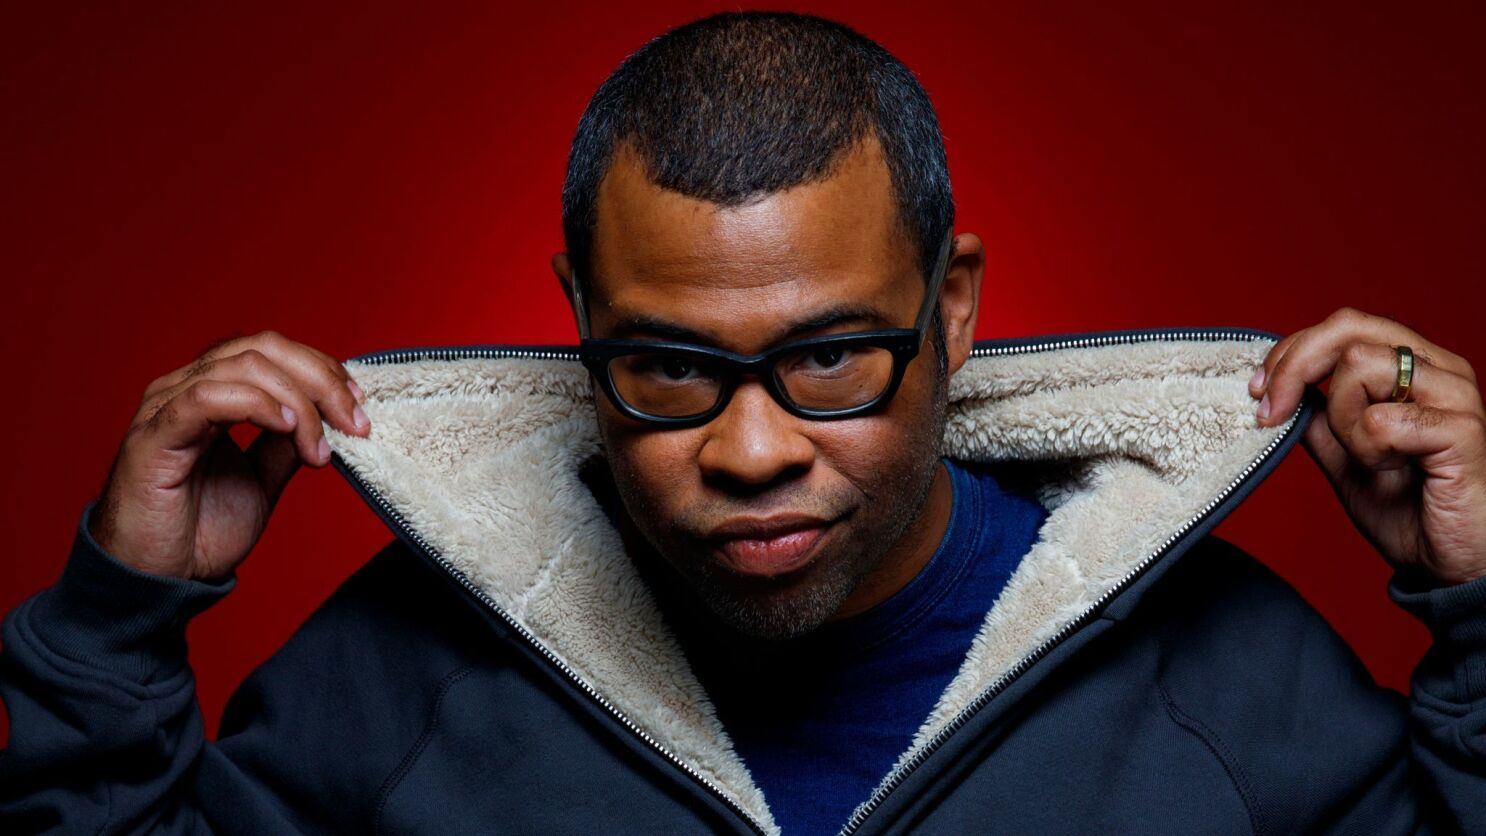 Jordan Peele On Get Out The Horror Film About Racism That Obama Would Love Los Angeles Times